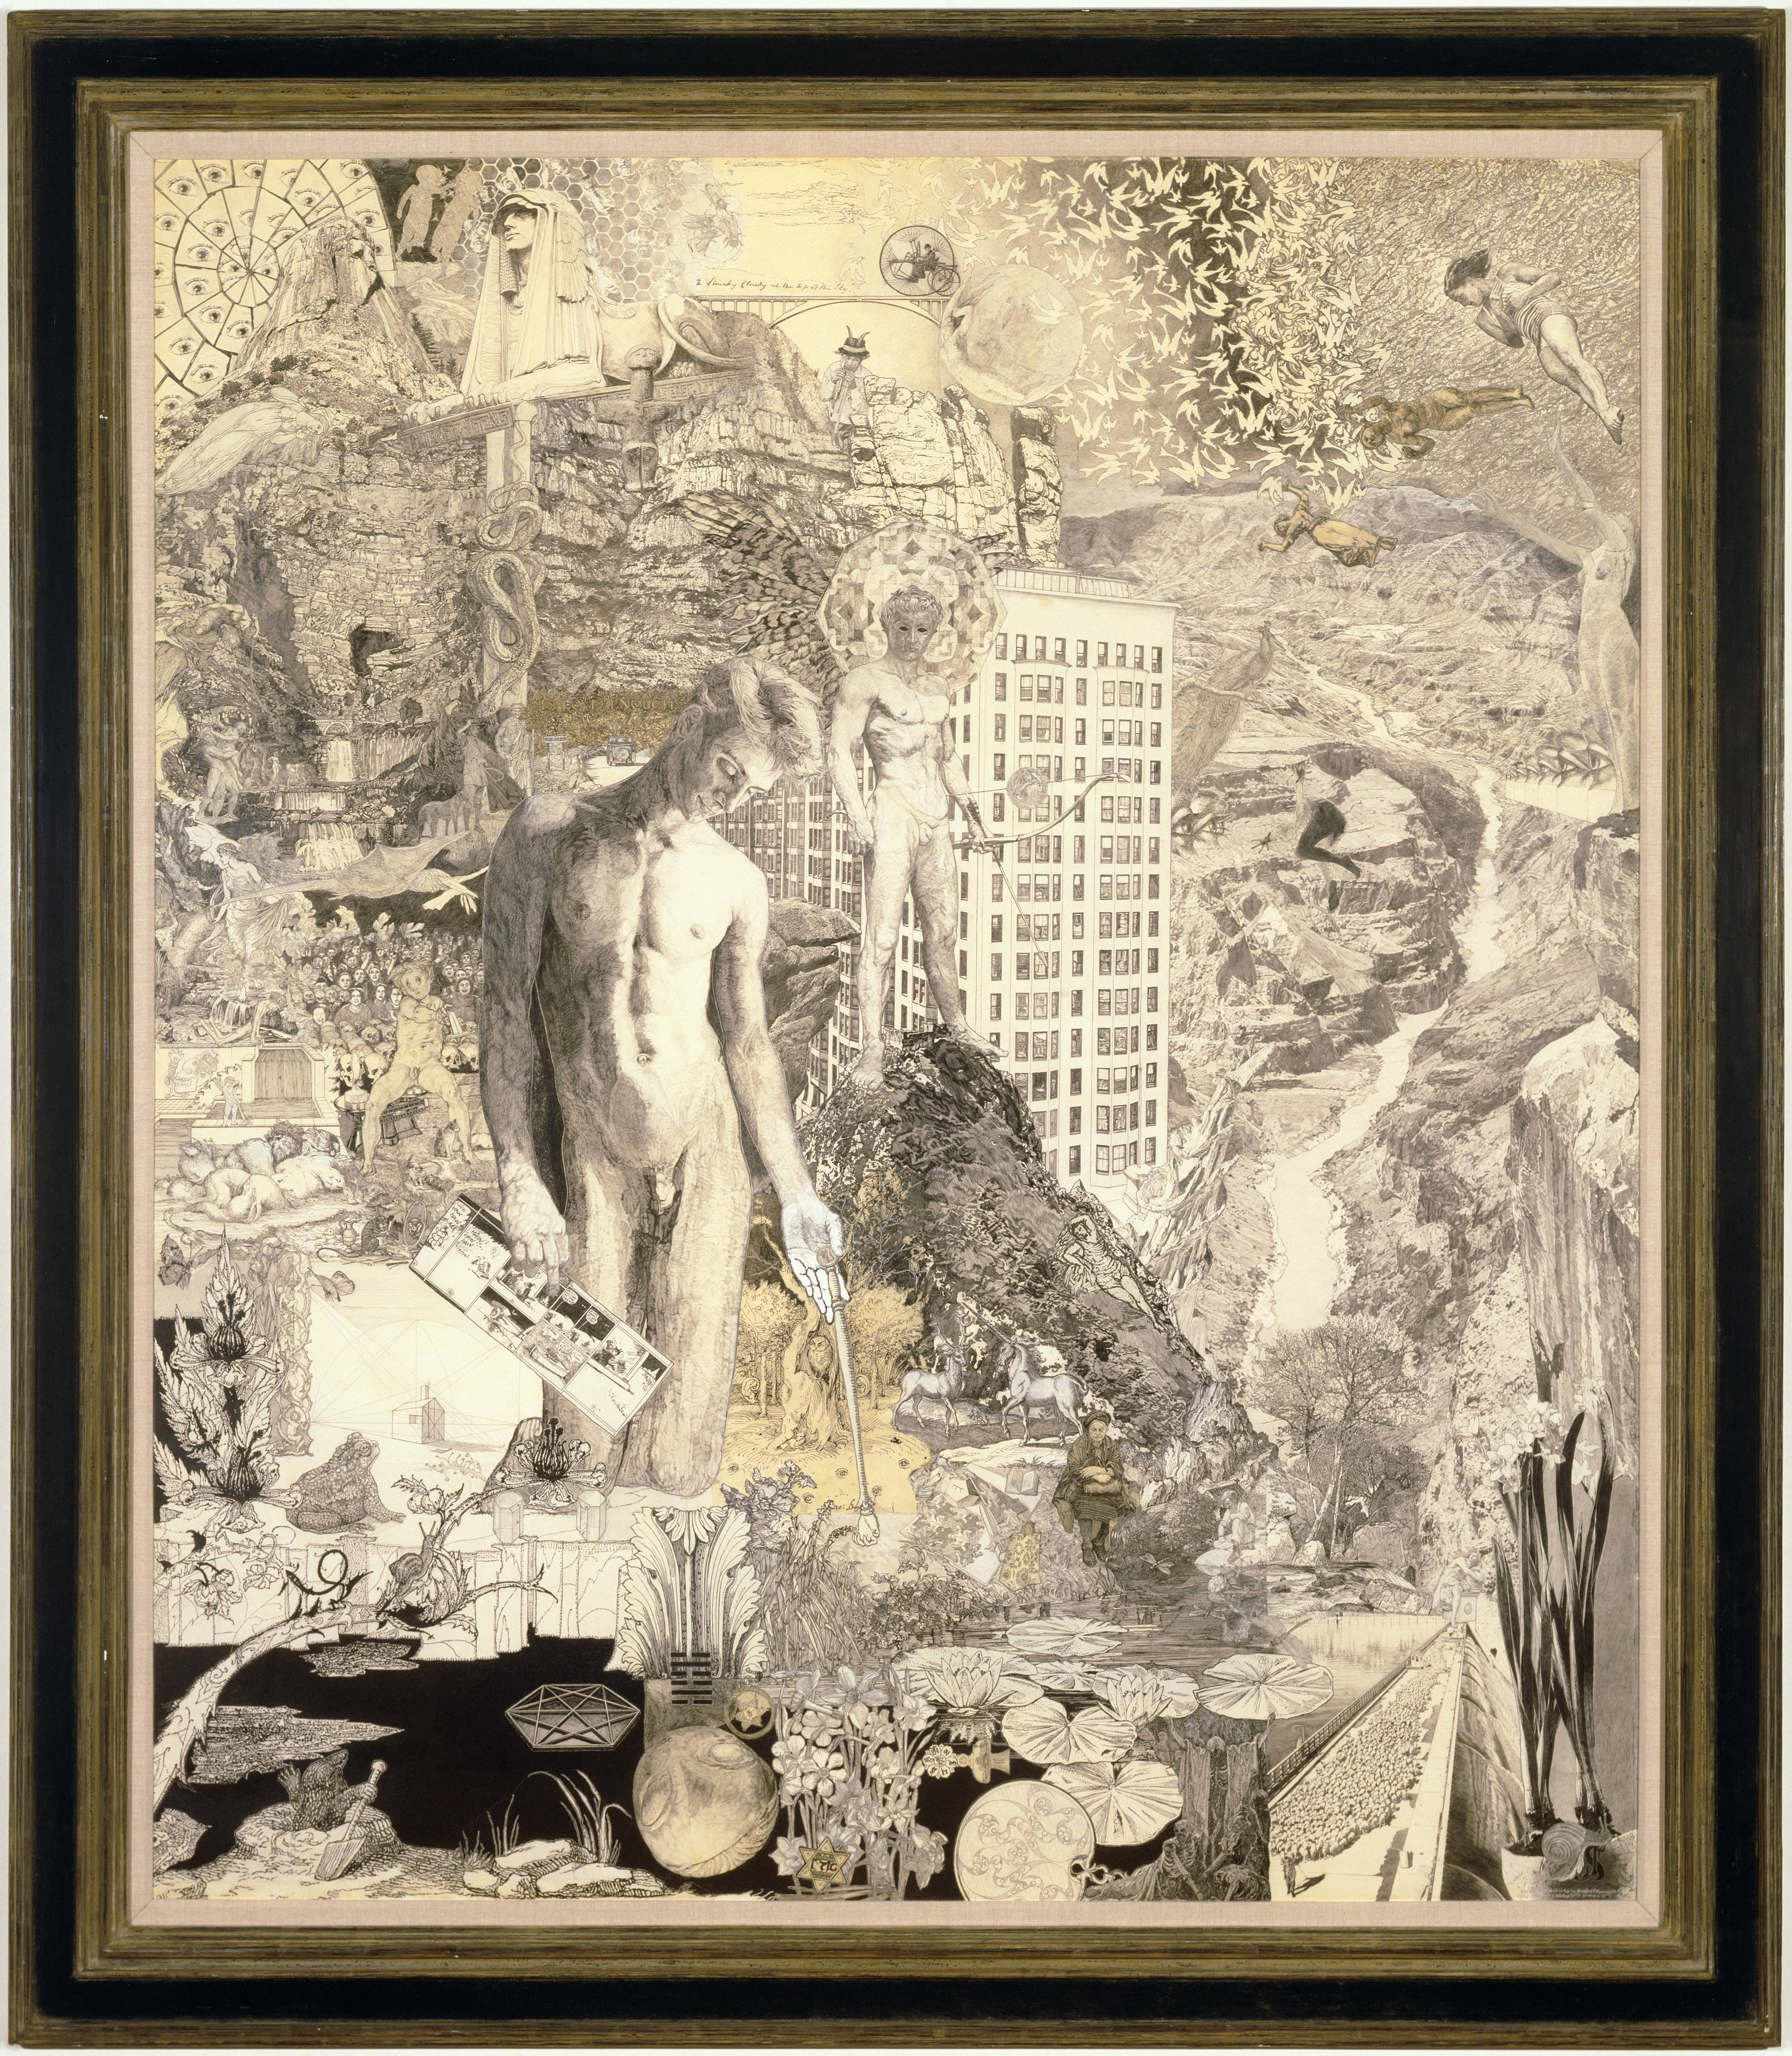 """This graphite collage drawing, which measures almost six feet tall and five feet wide, is epic in scope and detail. The piece is blanketed with dozens of intricate, allegorical drawings that contain scores of characters, symbols, landscapes, and patterns. The central figure is a beautiful, lithe young man who kneels, in the nude, to our left of center, gazing toward a dark pool of water. In one hand he holds what appears to be a backscratcher, and in the other he holds a Krazy Kat comic strip – while giving us the middle finger. Behind him, on a rocky peak, stands another naked young man who has black eyes, a kaleidoscope halo, and a bow and arrow. Other details include an Egyptian-style sphinx, the Hoover Dam, a hexagram, the Star of David, the Pied Piper, bees in honeycomb, apartment buildings, flocks of birds, hills with eyes, the phrase """"Is Love Enough"""", and a unicorn."""